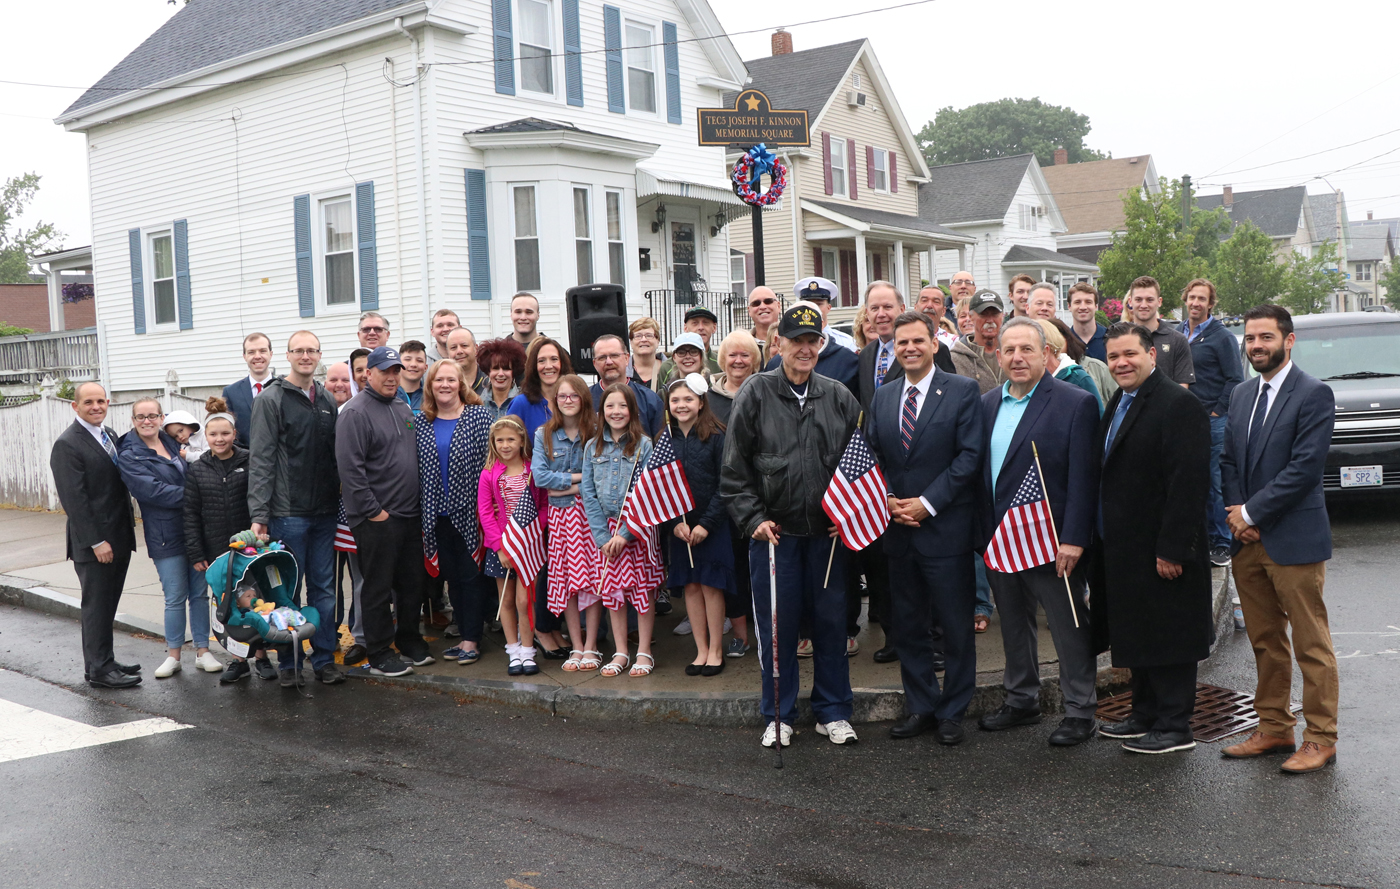 The Kinnon family was joined by Mayor Gary Christenson, state and local elected officials at the dedication ceremony of US Army Medic Joseph F Kinnon.